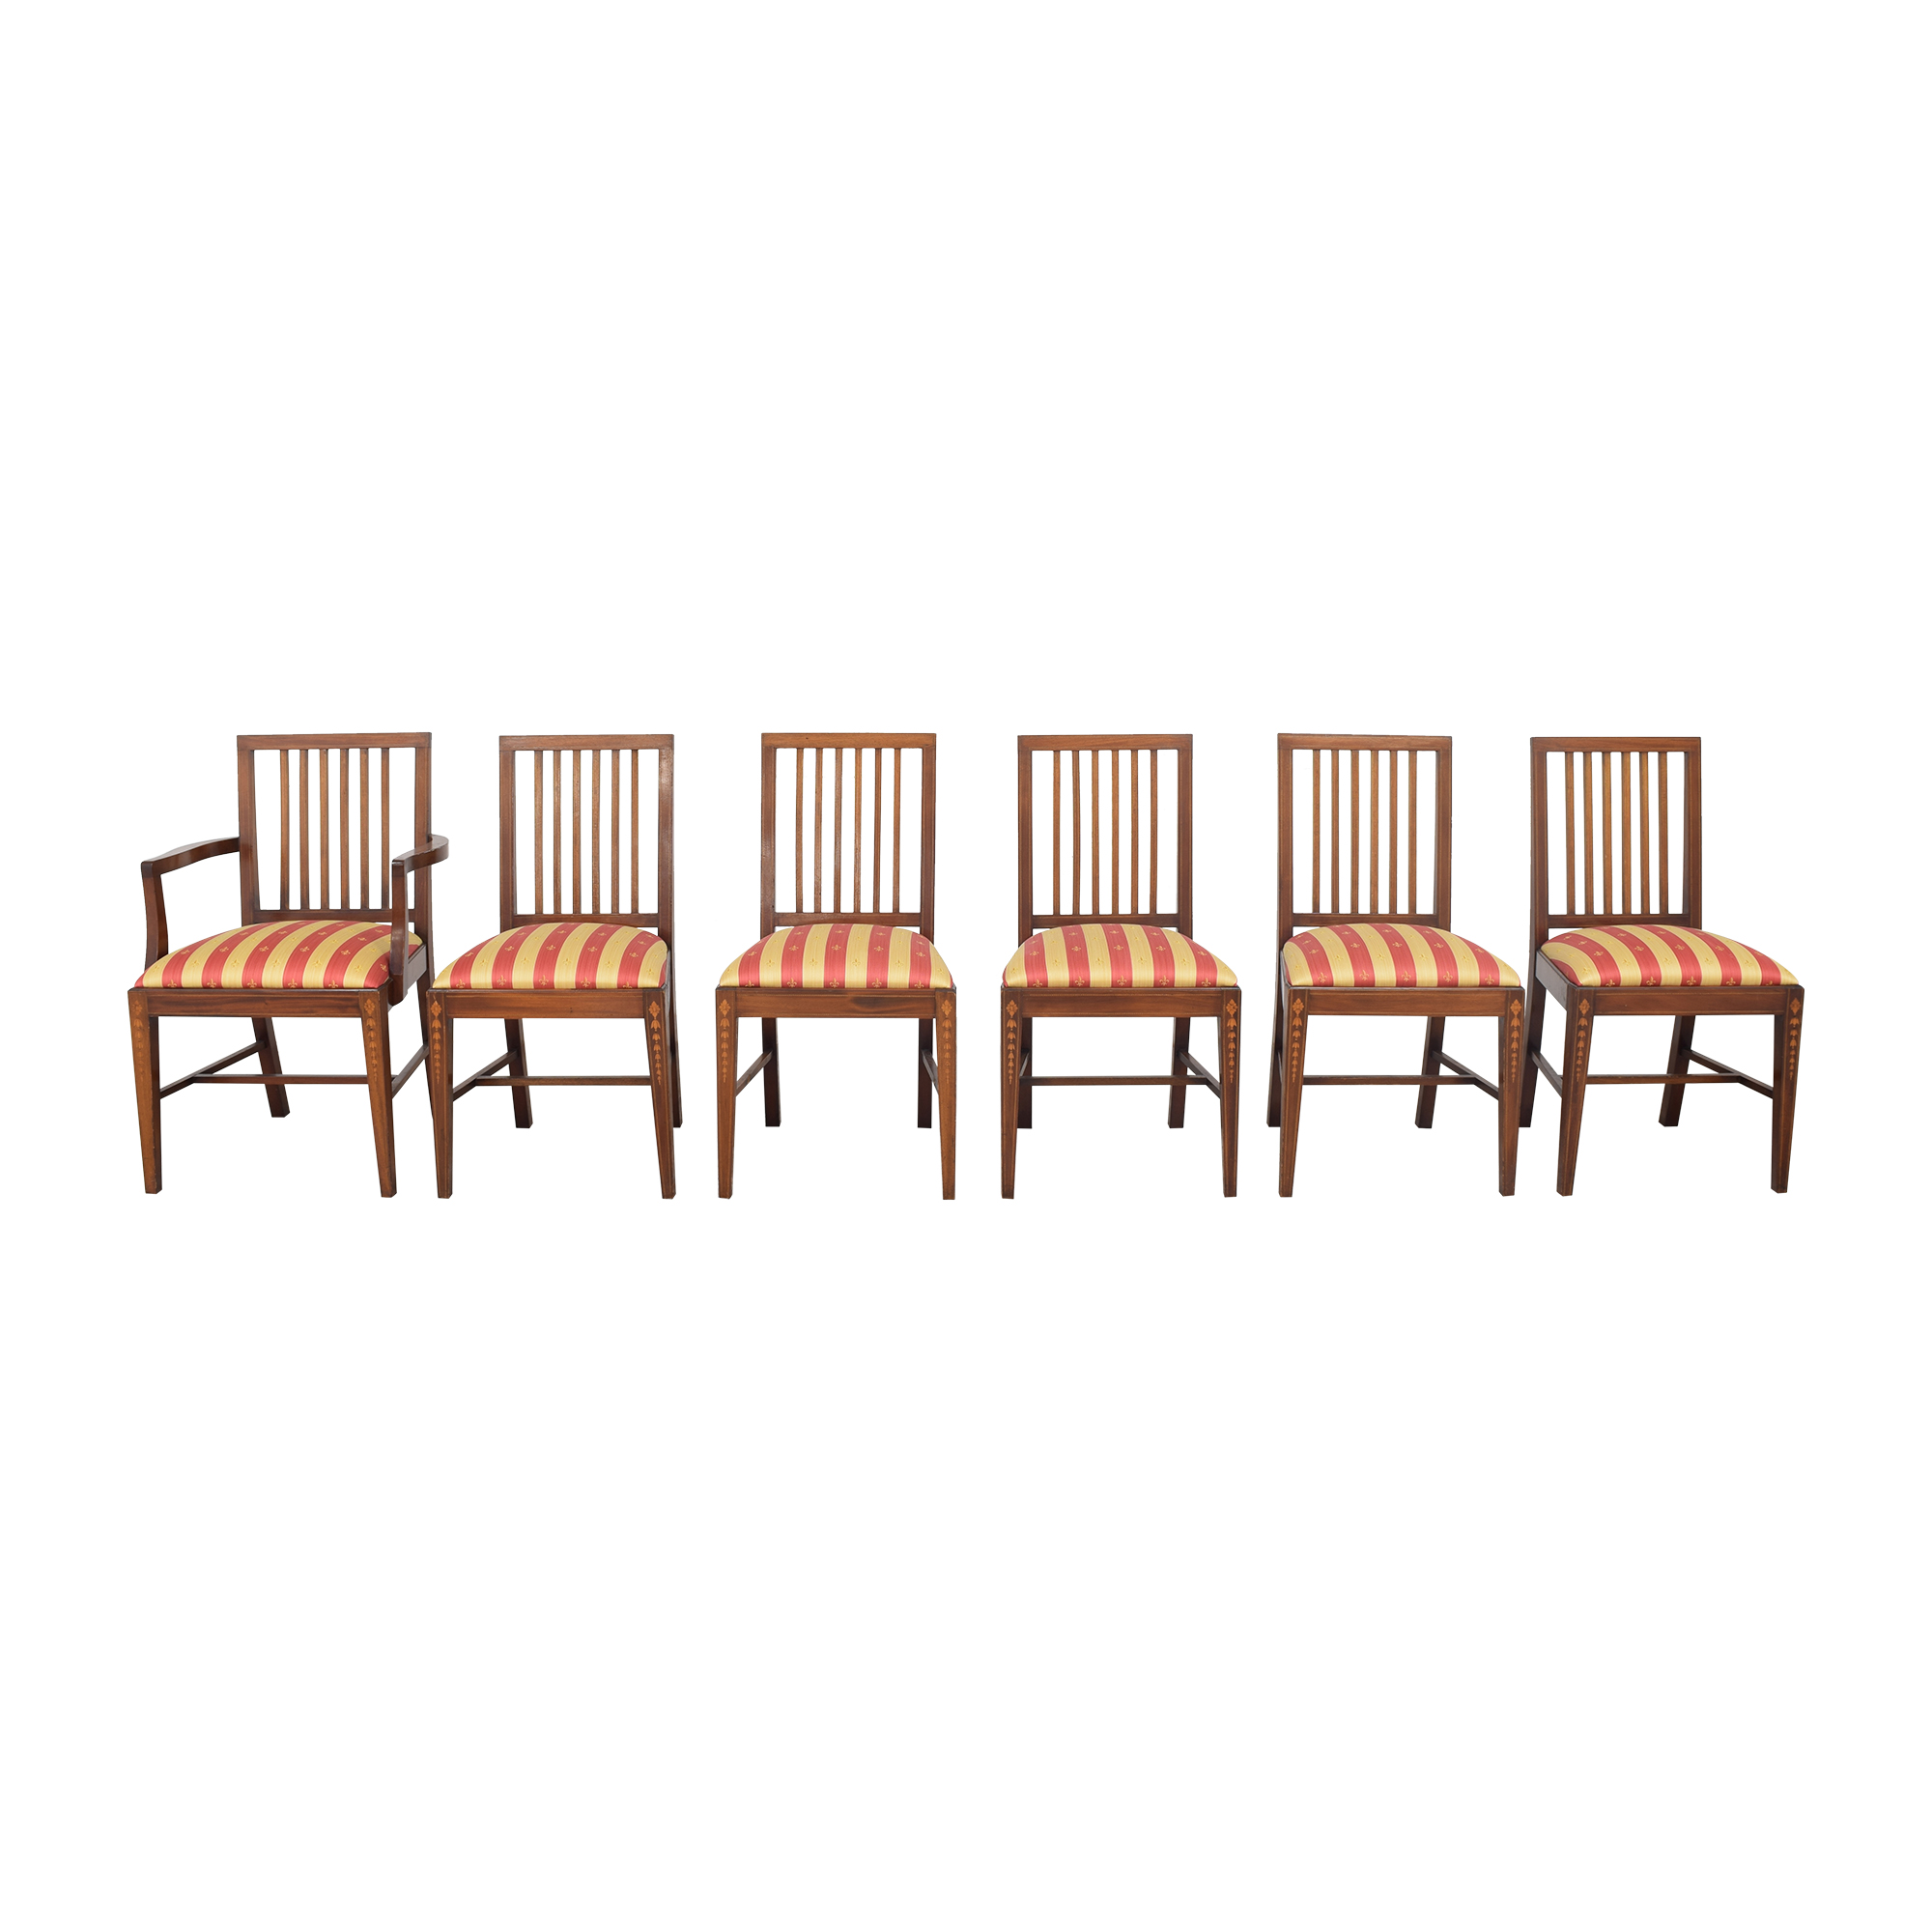 Upholstered Mission-Style Dining Chairs